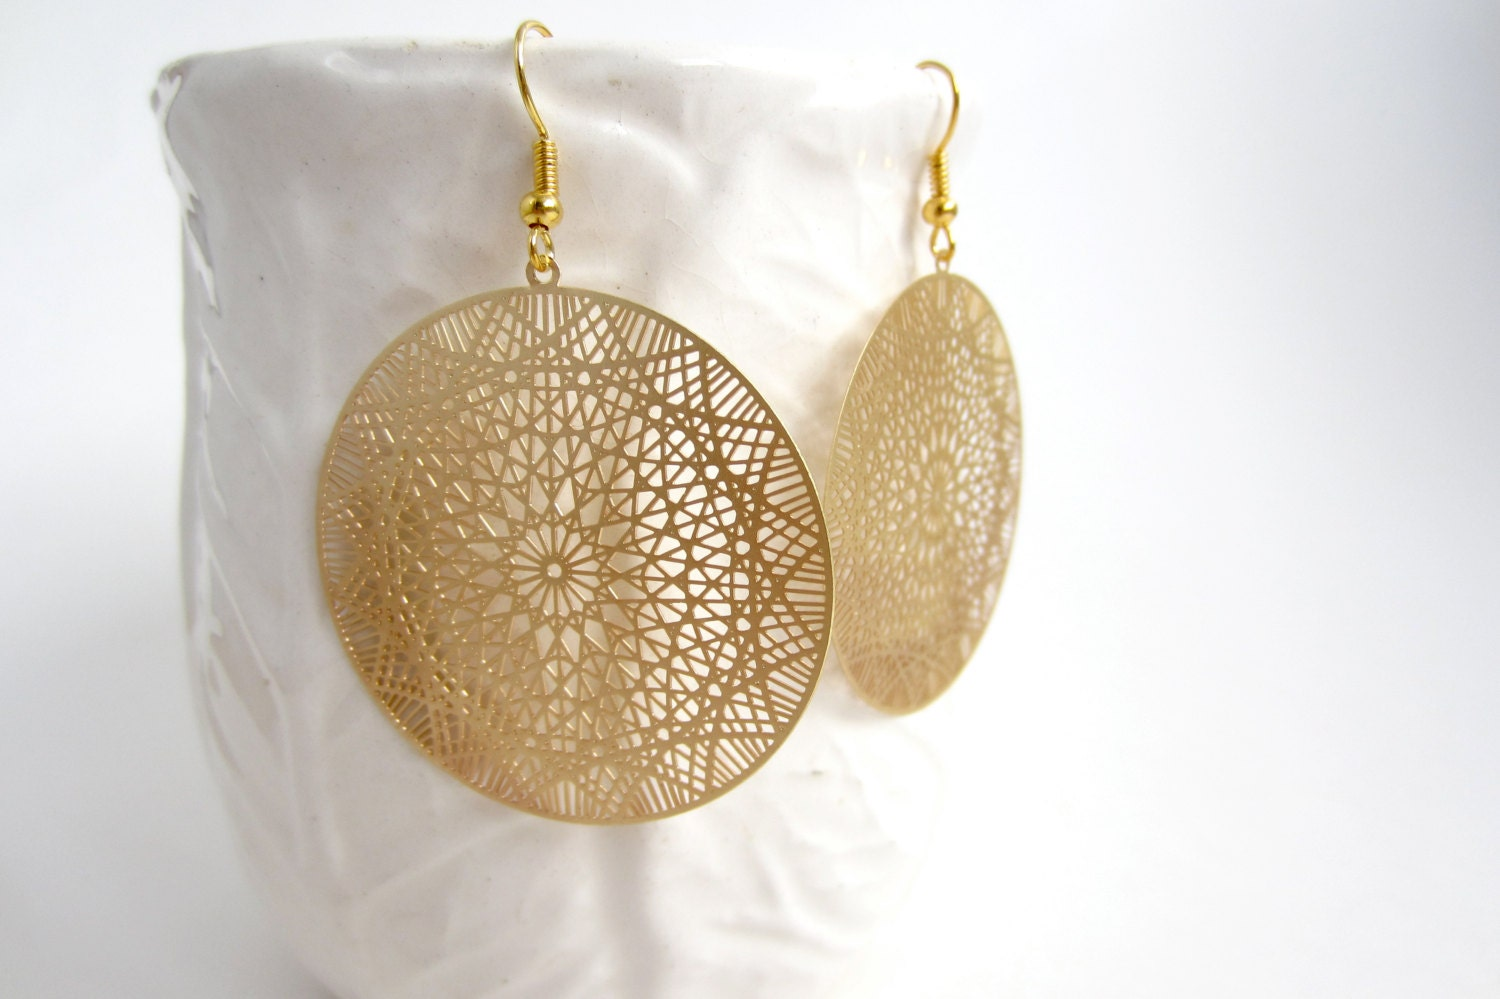 gold filigree earrings delicate jewelry by sageandolivia